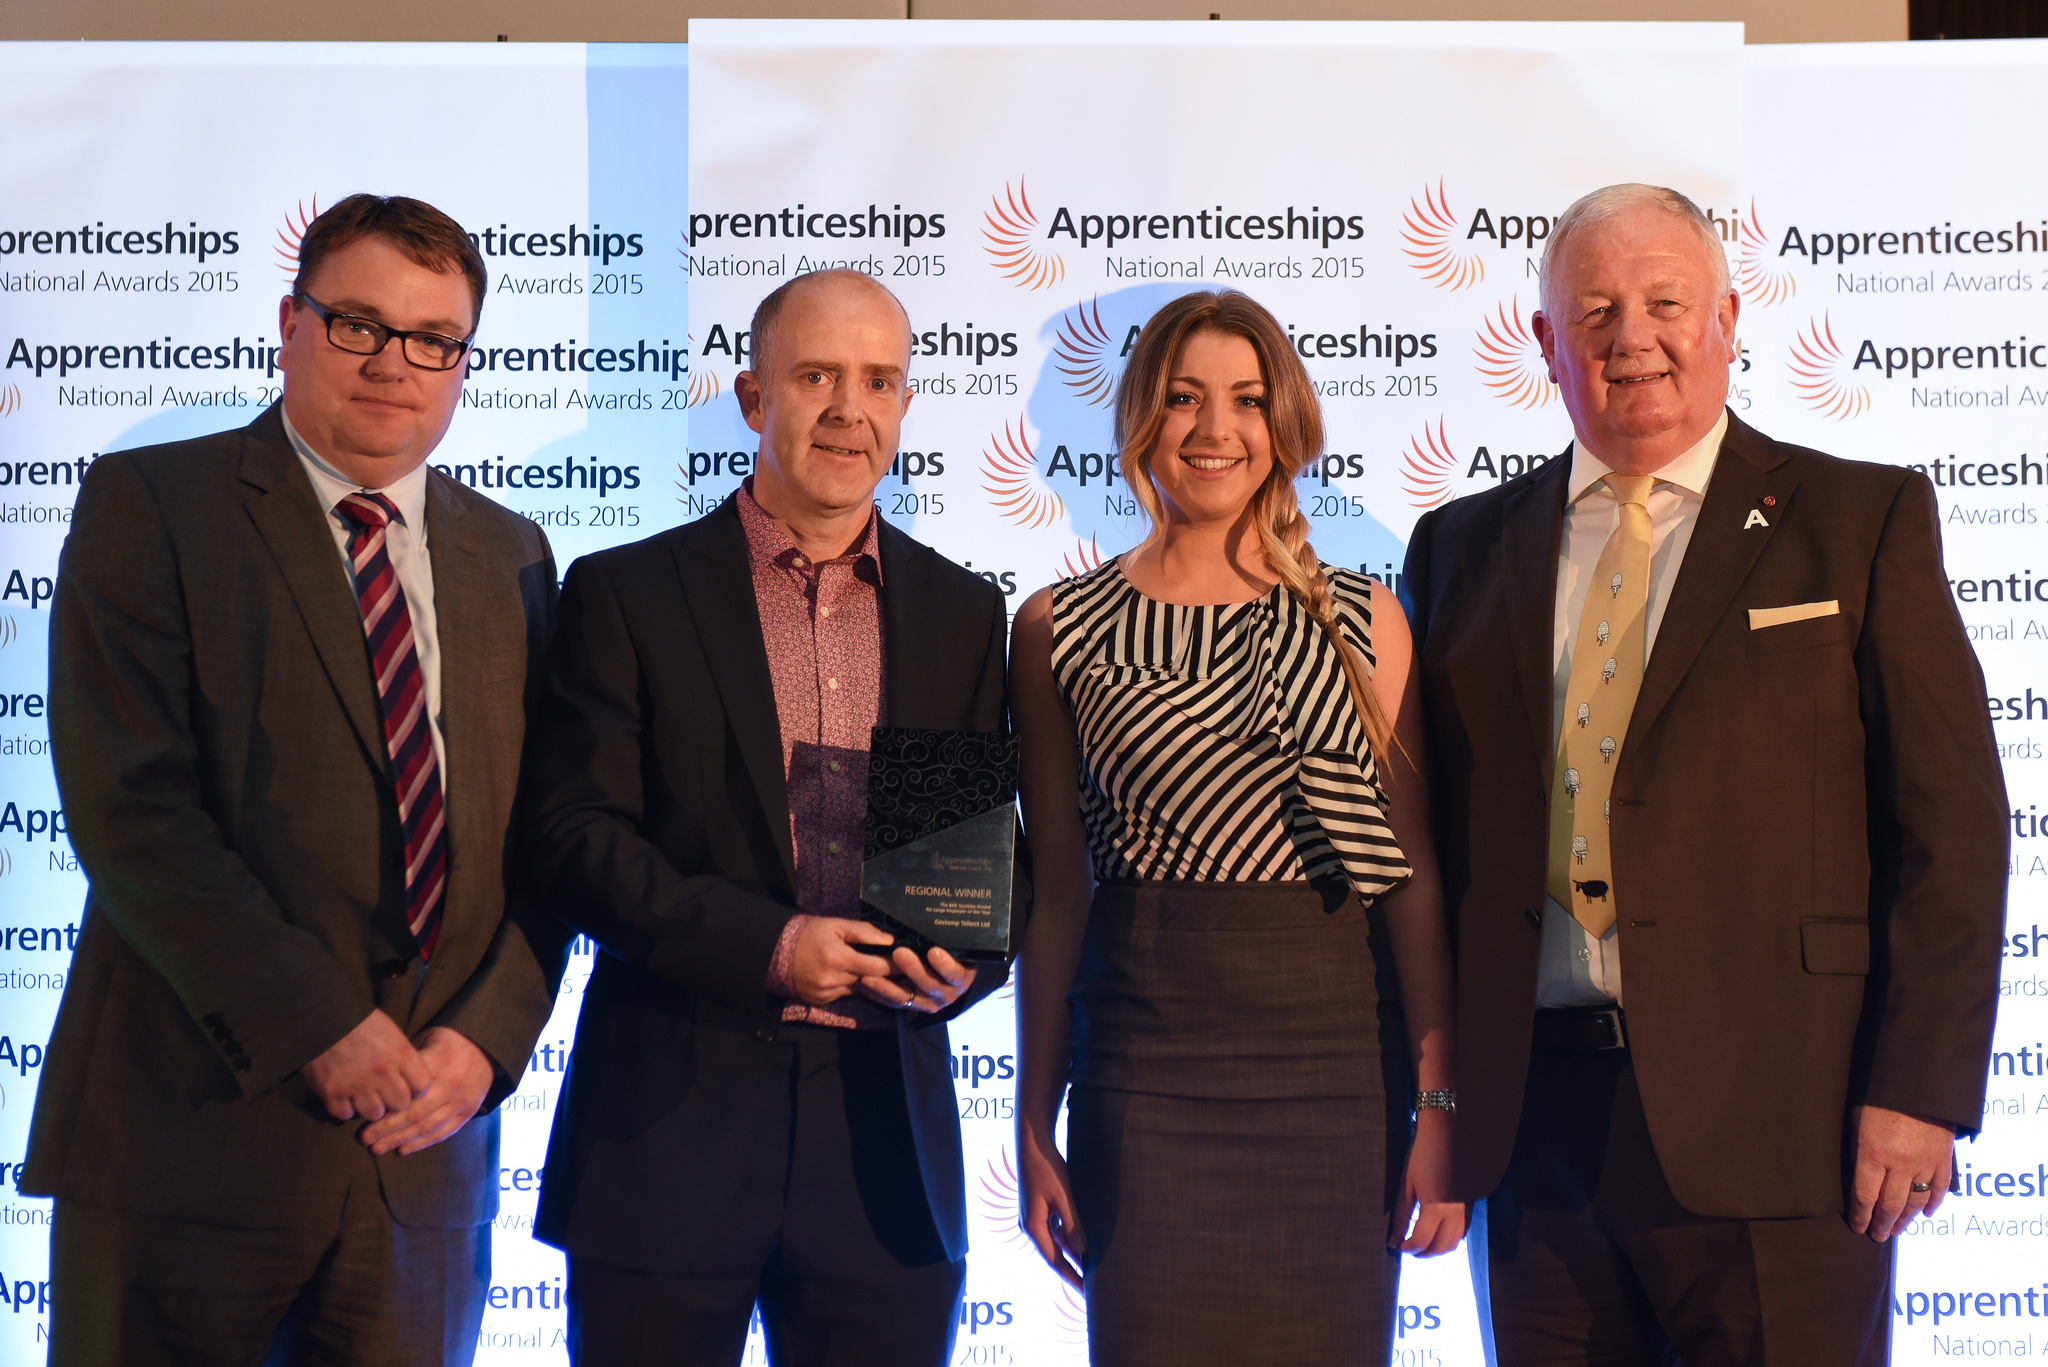 Winner of Large Business of the Year (L-R) Ian Clifford, PX Limited, Paul Healy, Redcar & Cleveland Borough Council, David Pearson & Hannah Potter : Gestamp Tallent LTD and George Ritchie MBE, PX Limited in Discovery Museum, October 15